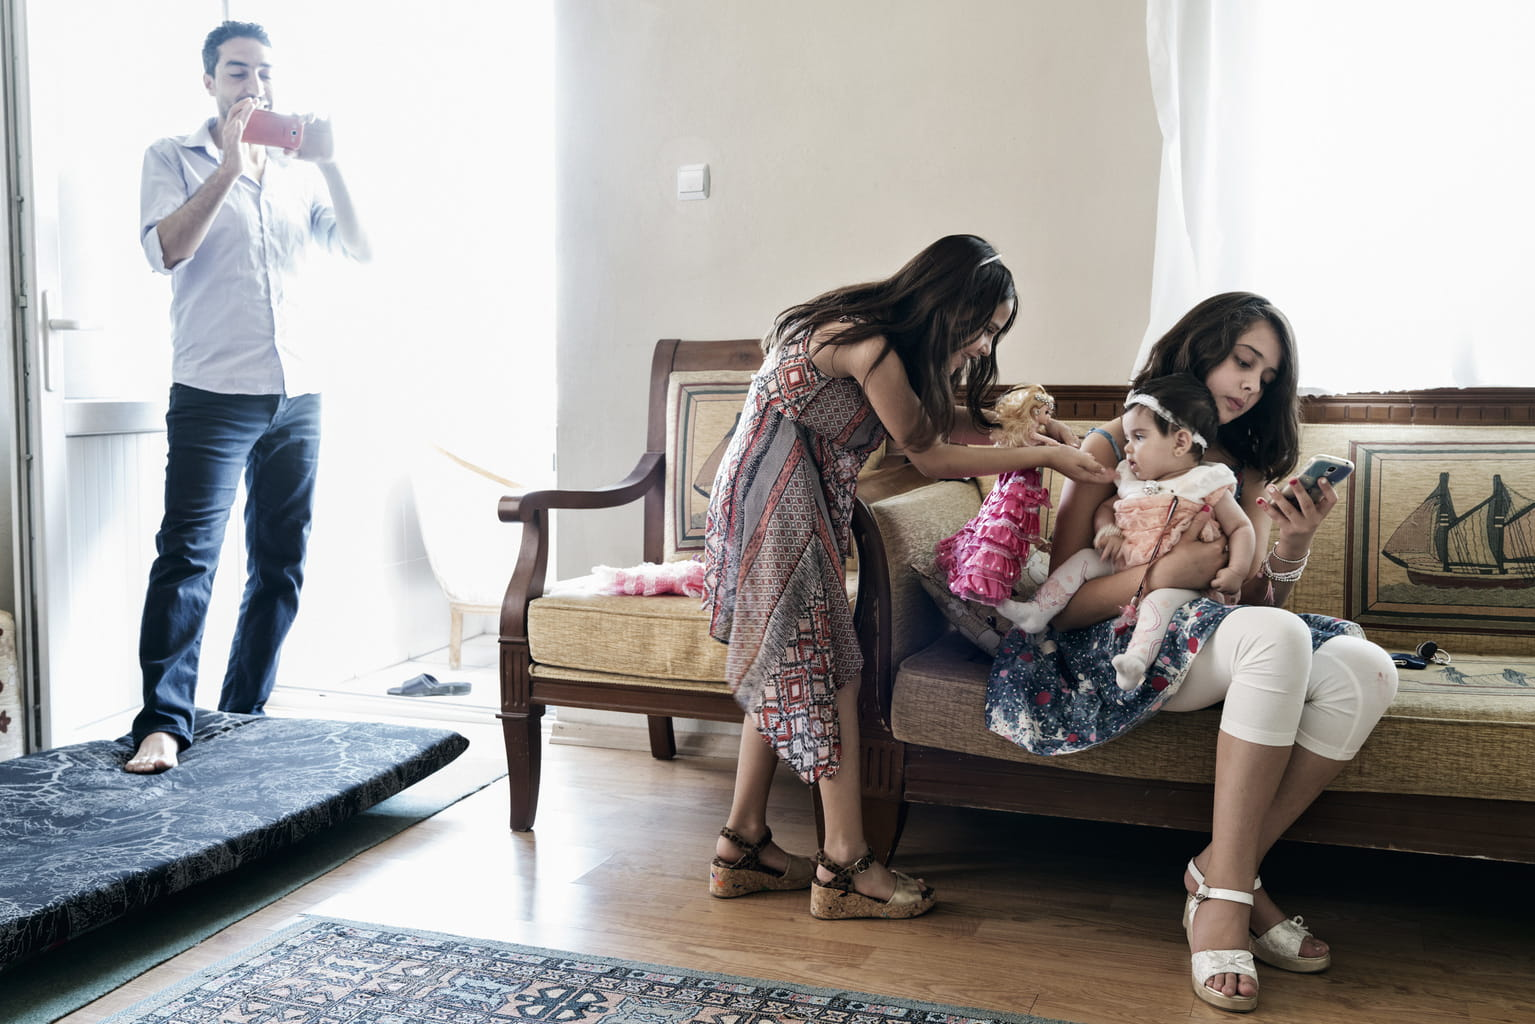 July 30, 2016, Gaziantep, Turkey. Syrian refugee Taher Hamada takes photos as his nieces, who live in the U.S., care for his four-month-old daughter, Tamara, at his apartment in southern Turkey.